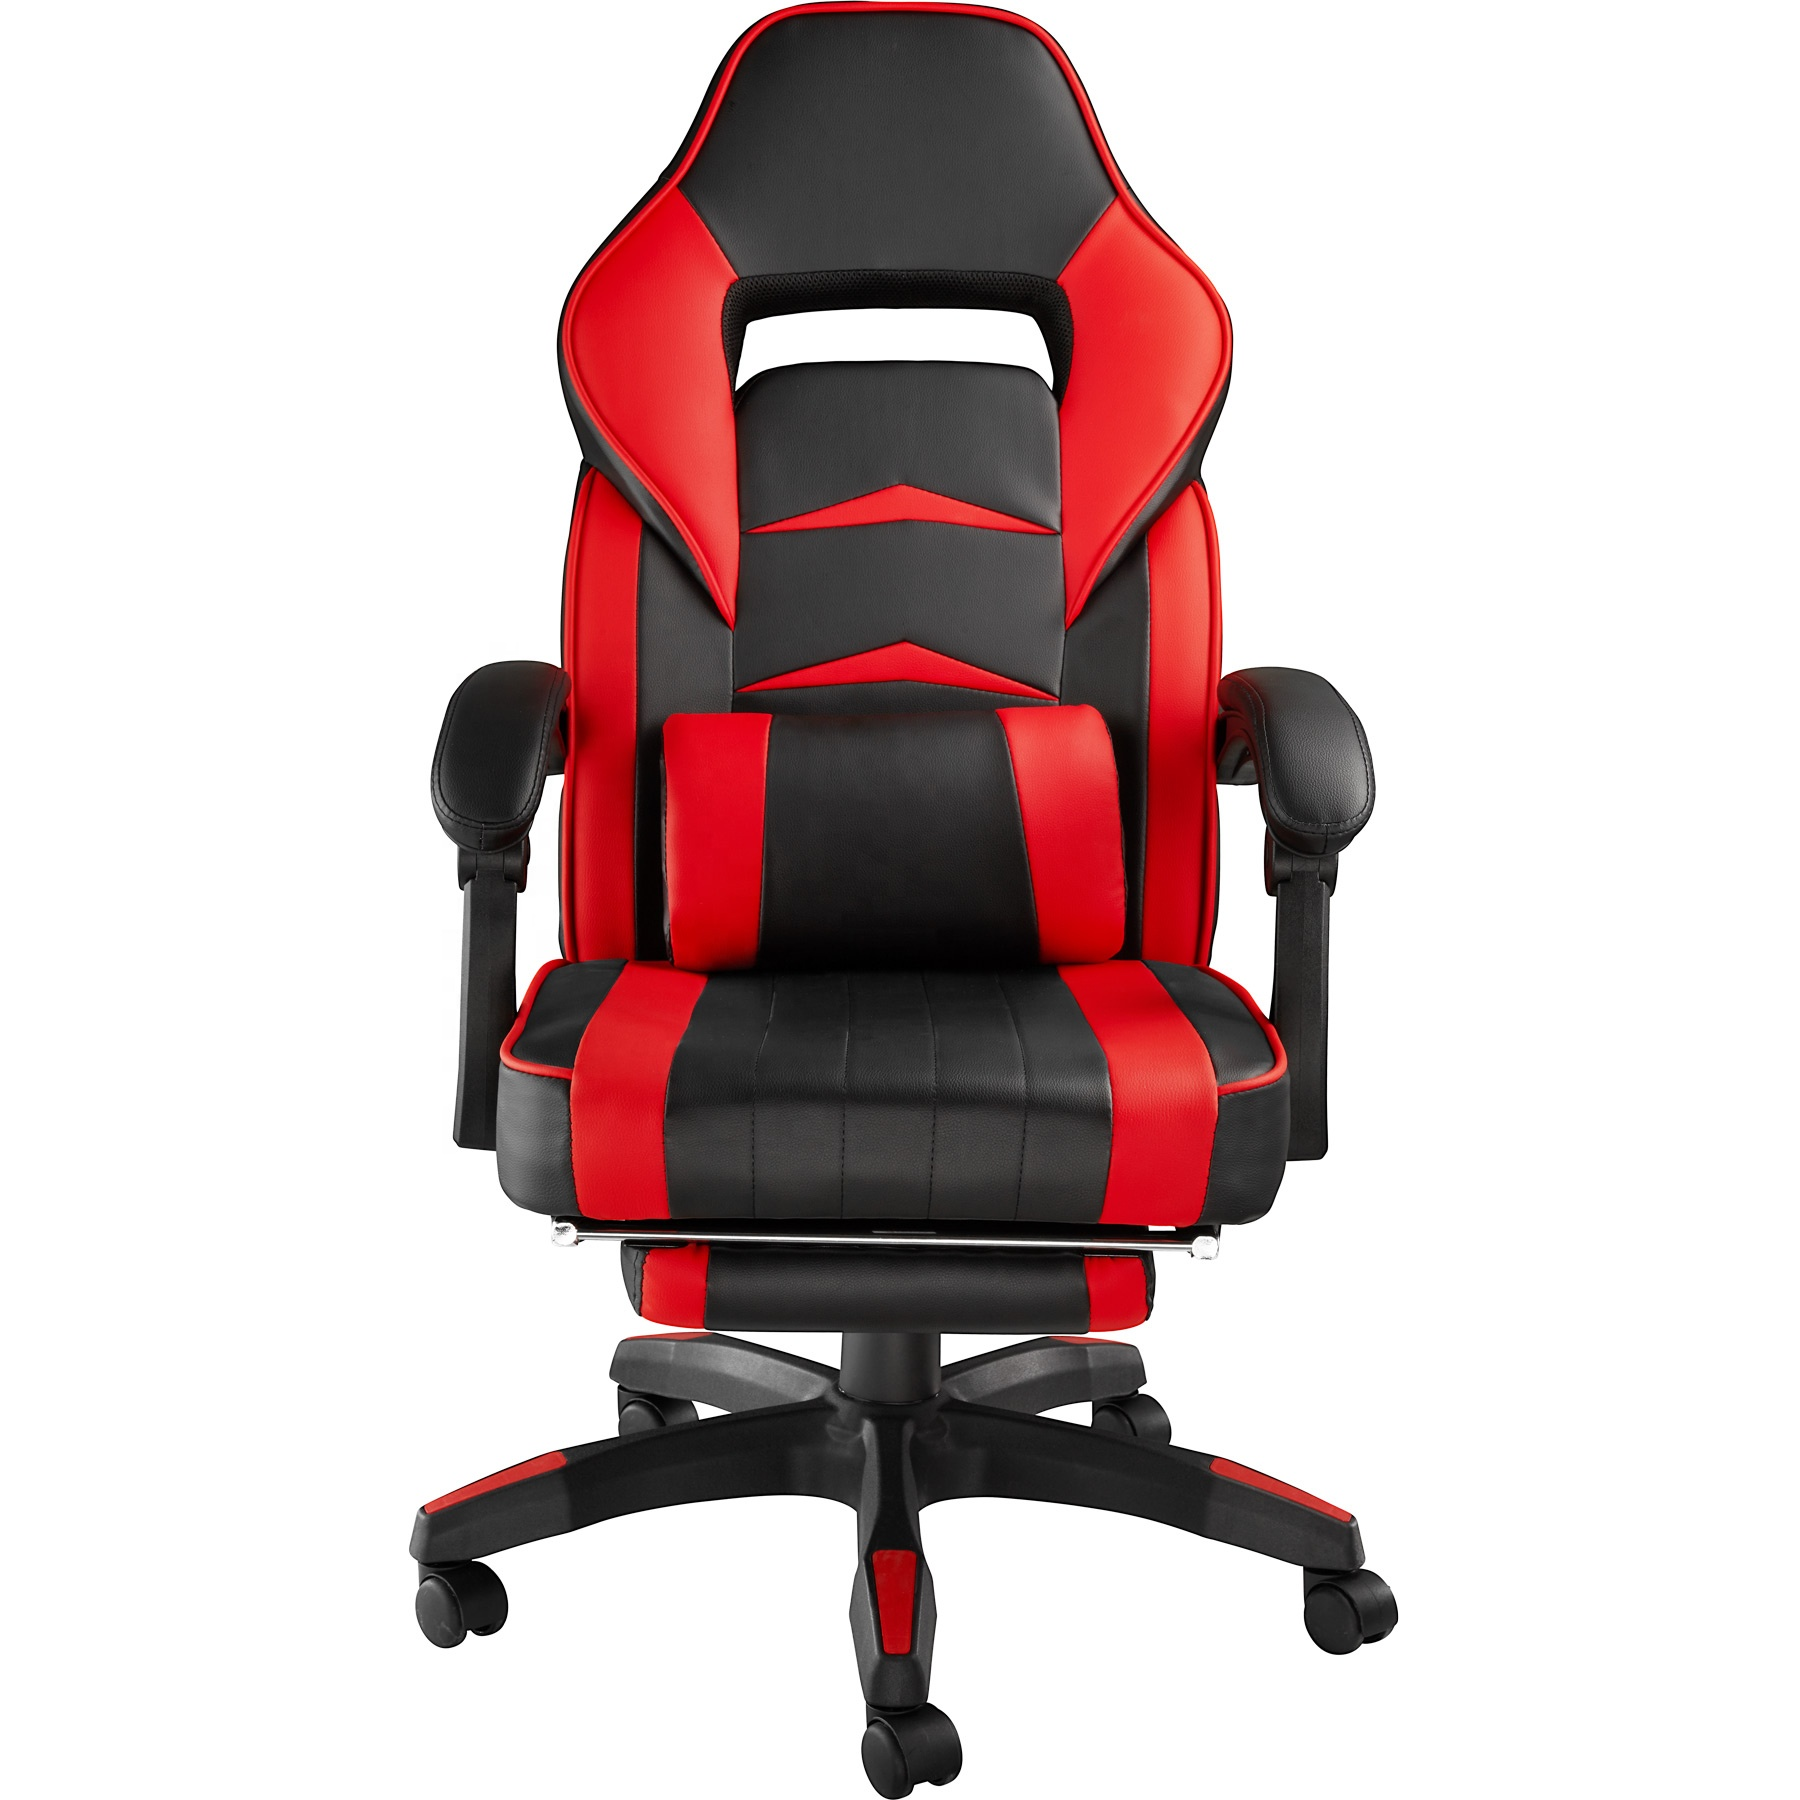 High Back Ergonomic Adjustable Racing Gaming Office Chair With Footrest